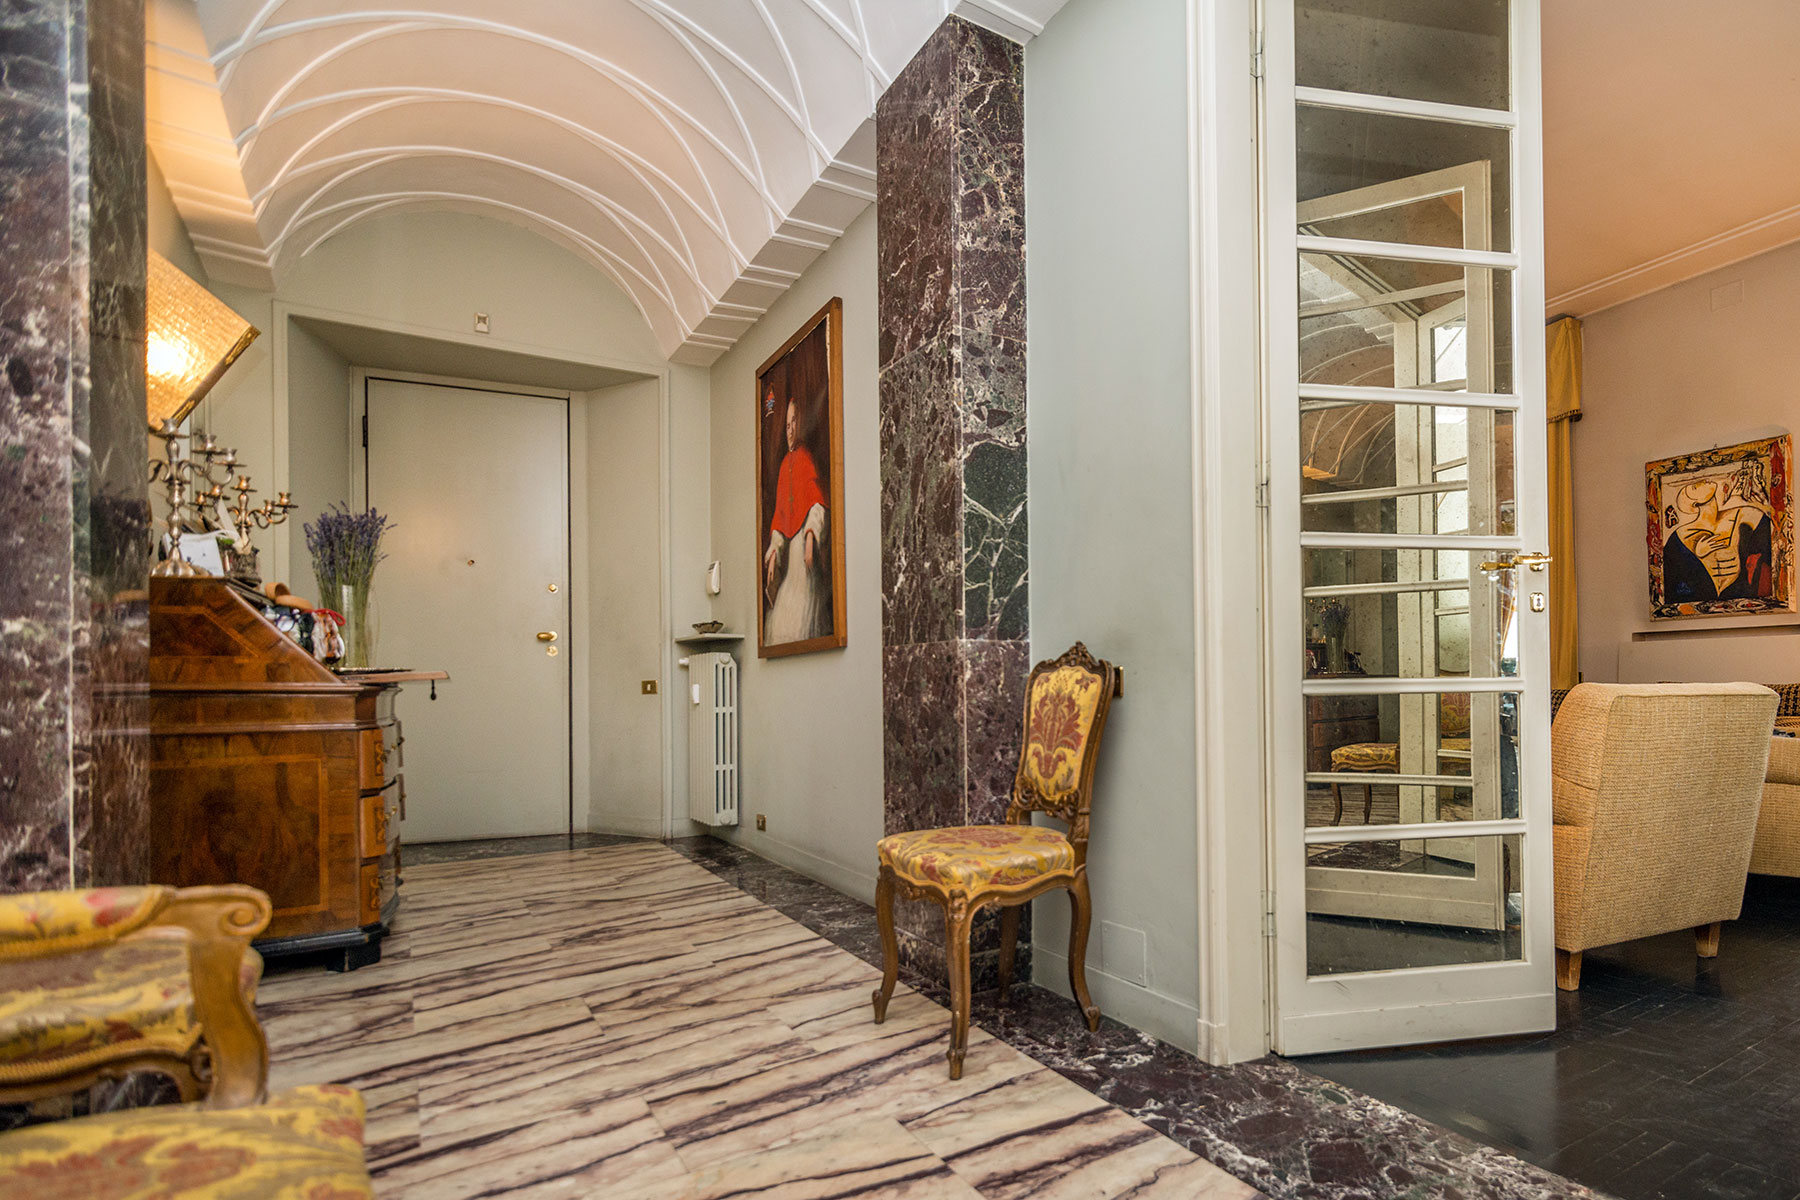 Additional photo for property listing at Elegant apartment in the historical center of Milan Piazza Sant'Erasmo Milano, Milan 20100 Italy